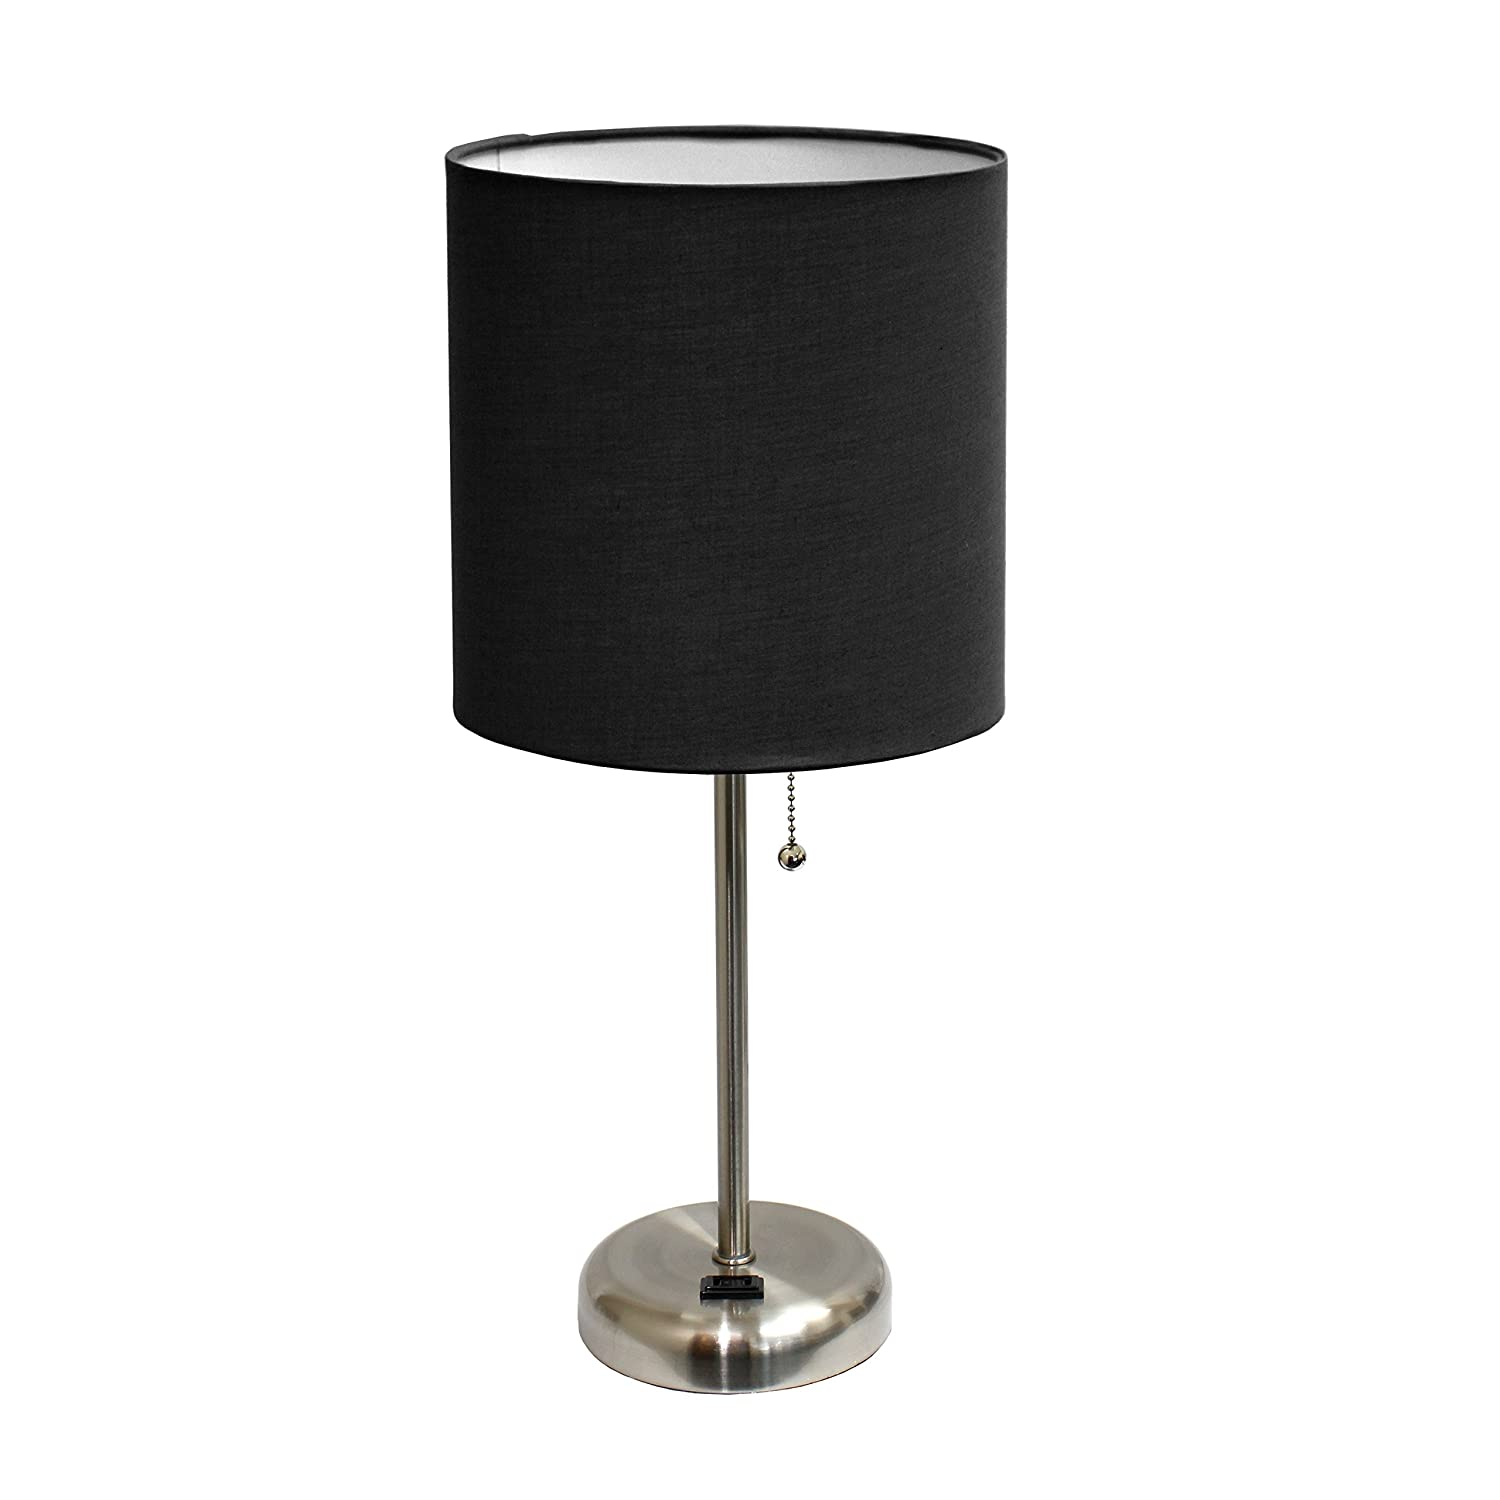 century mid collections spun emfurn free lamp lamps table black and modern shipping white